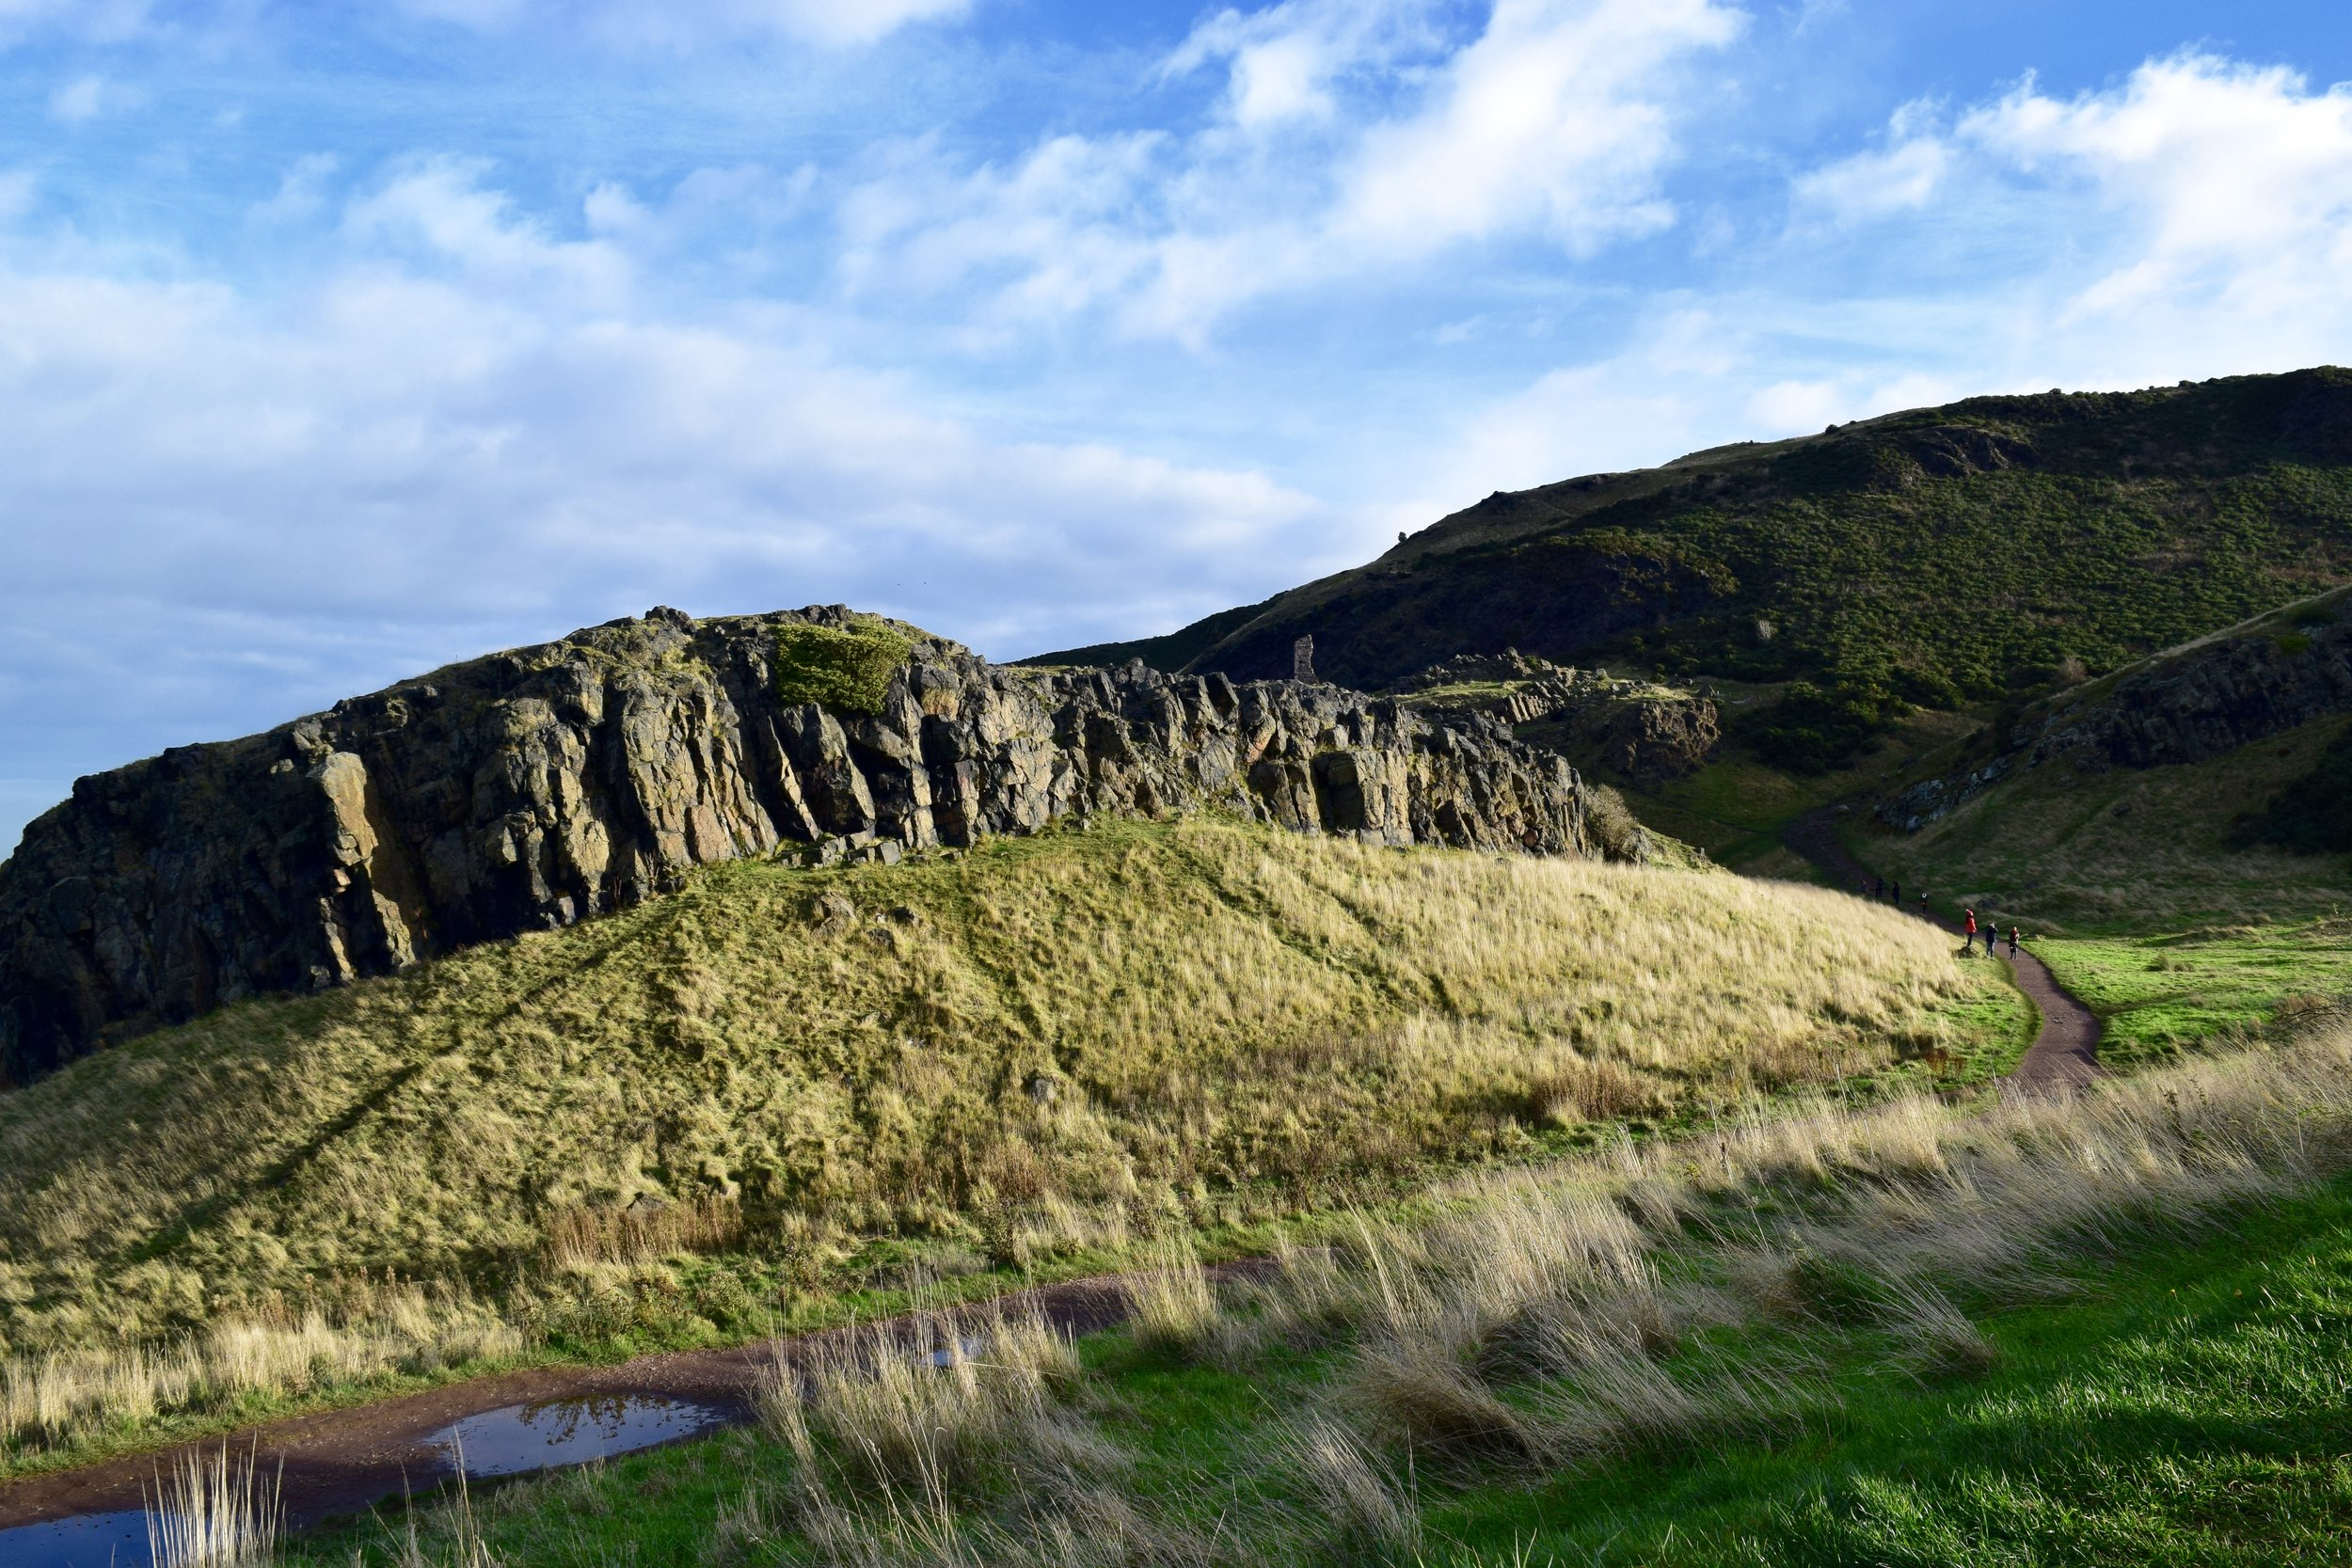 Hiking Arthur's Seat